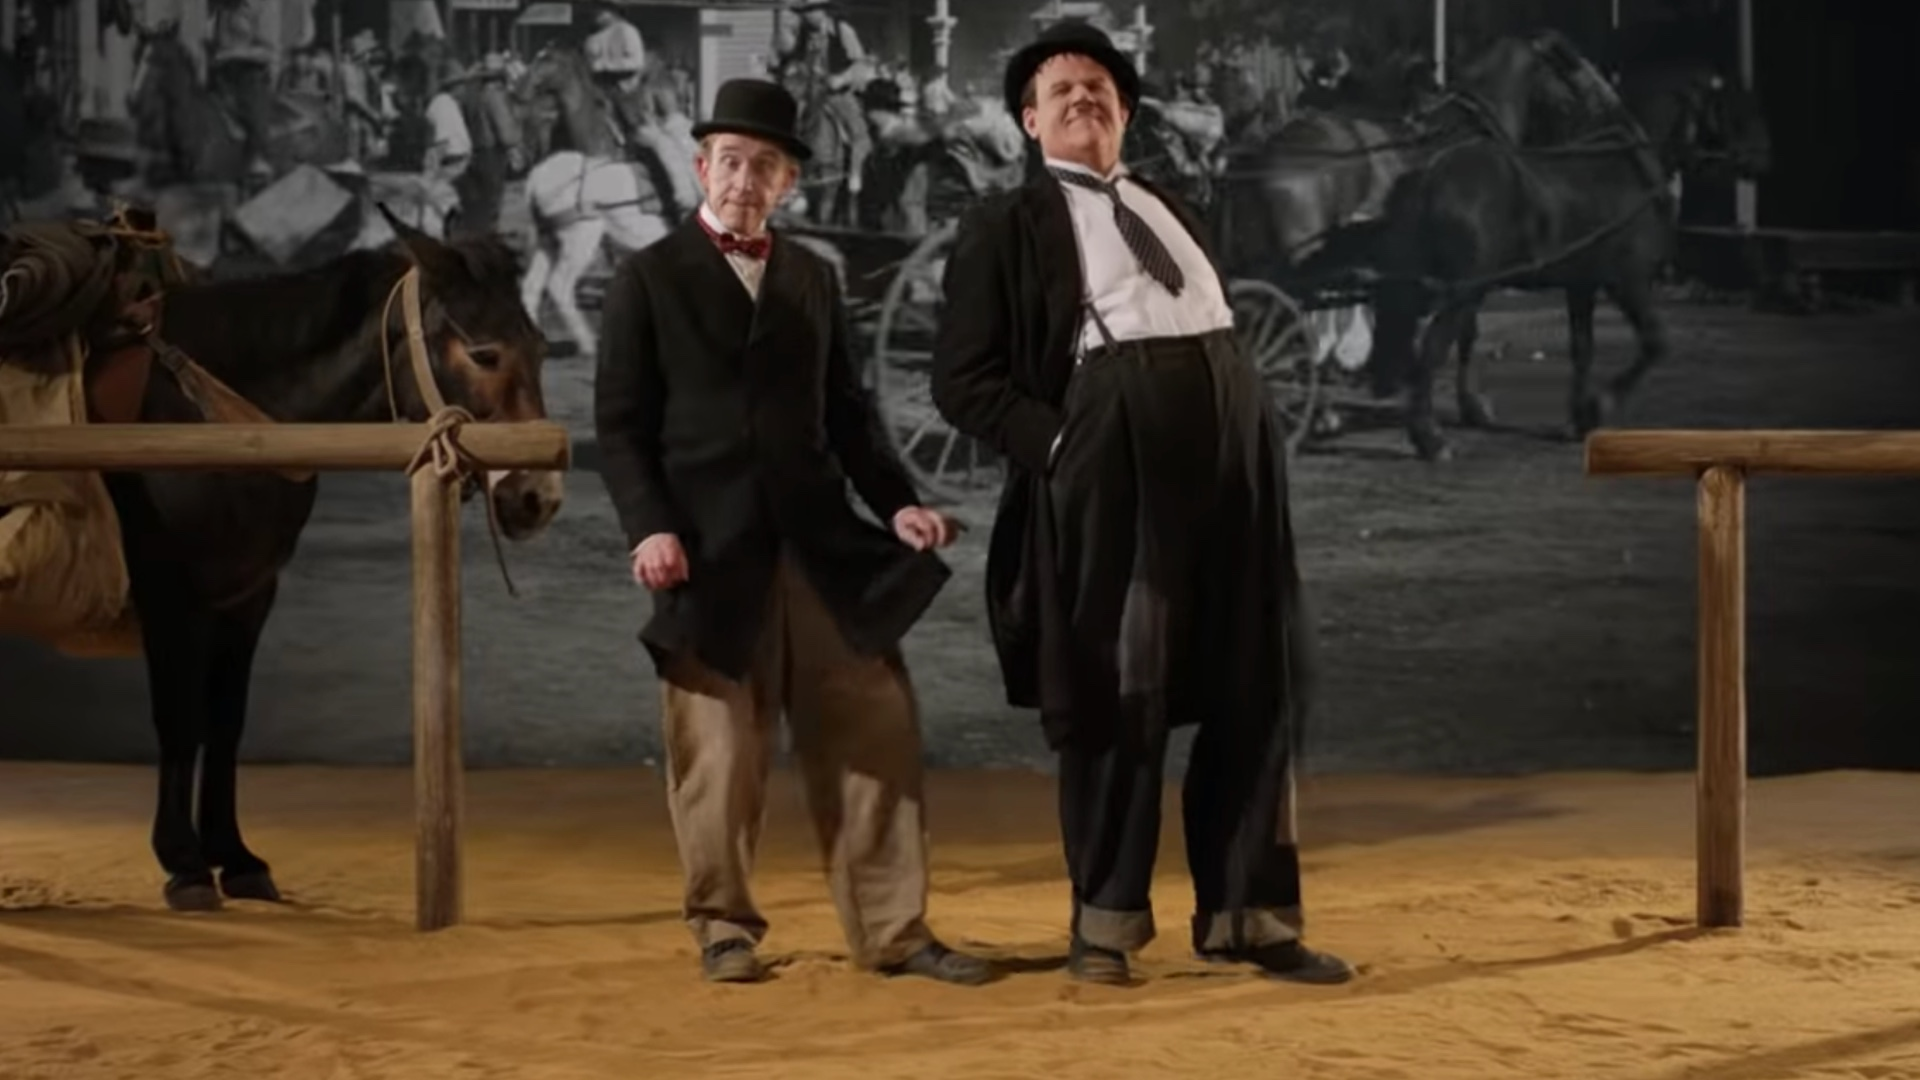 stan_and_ollie_movie